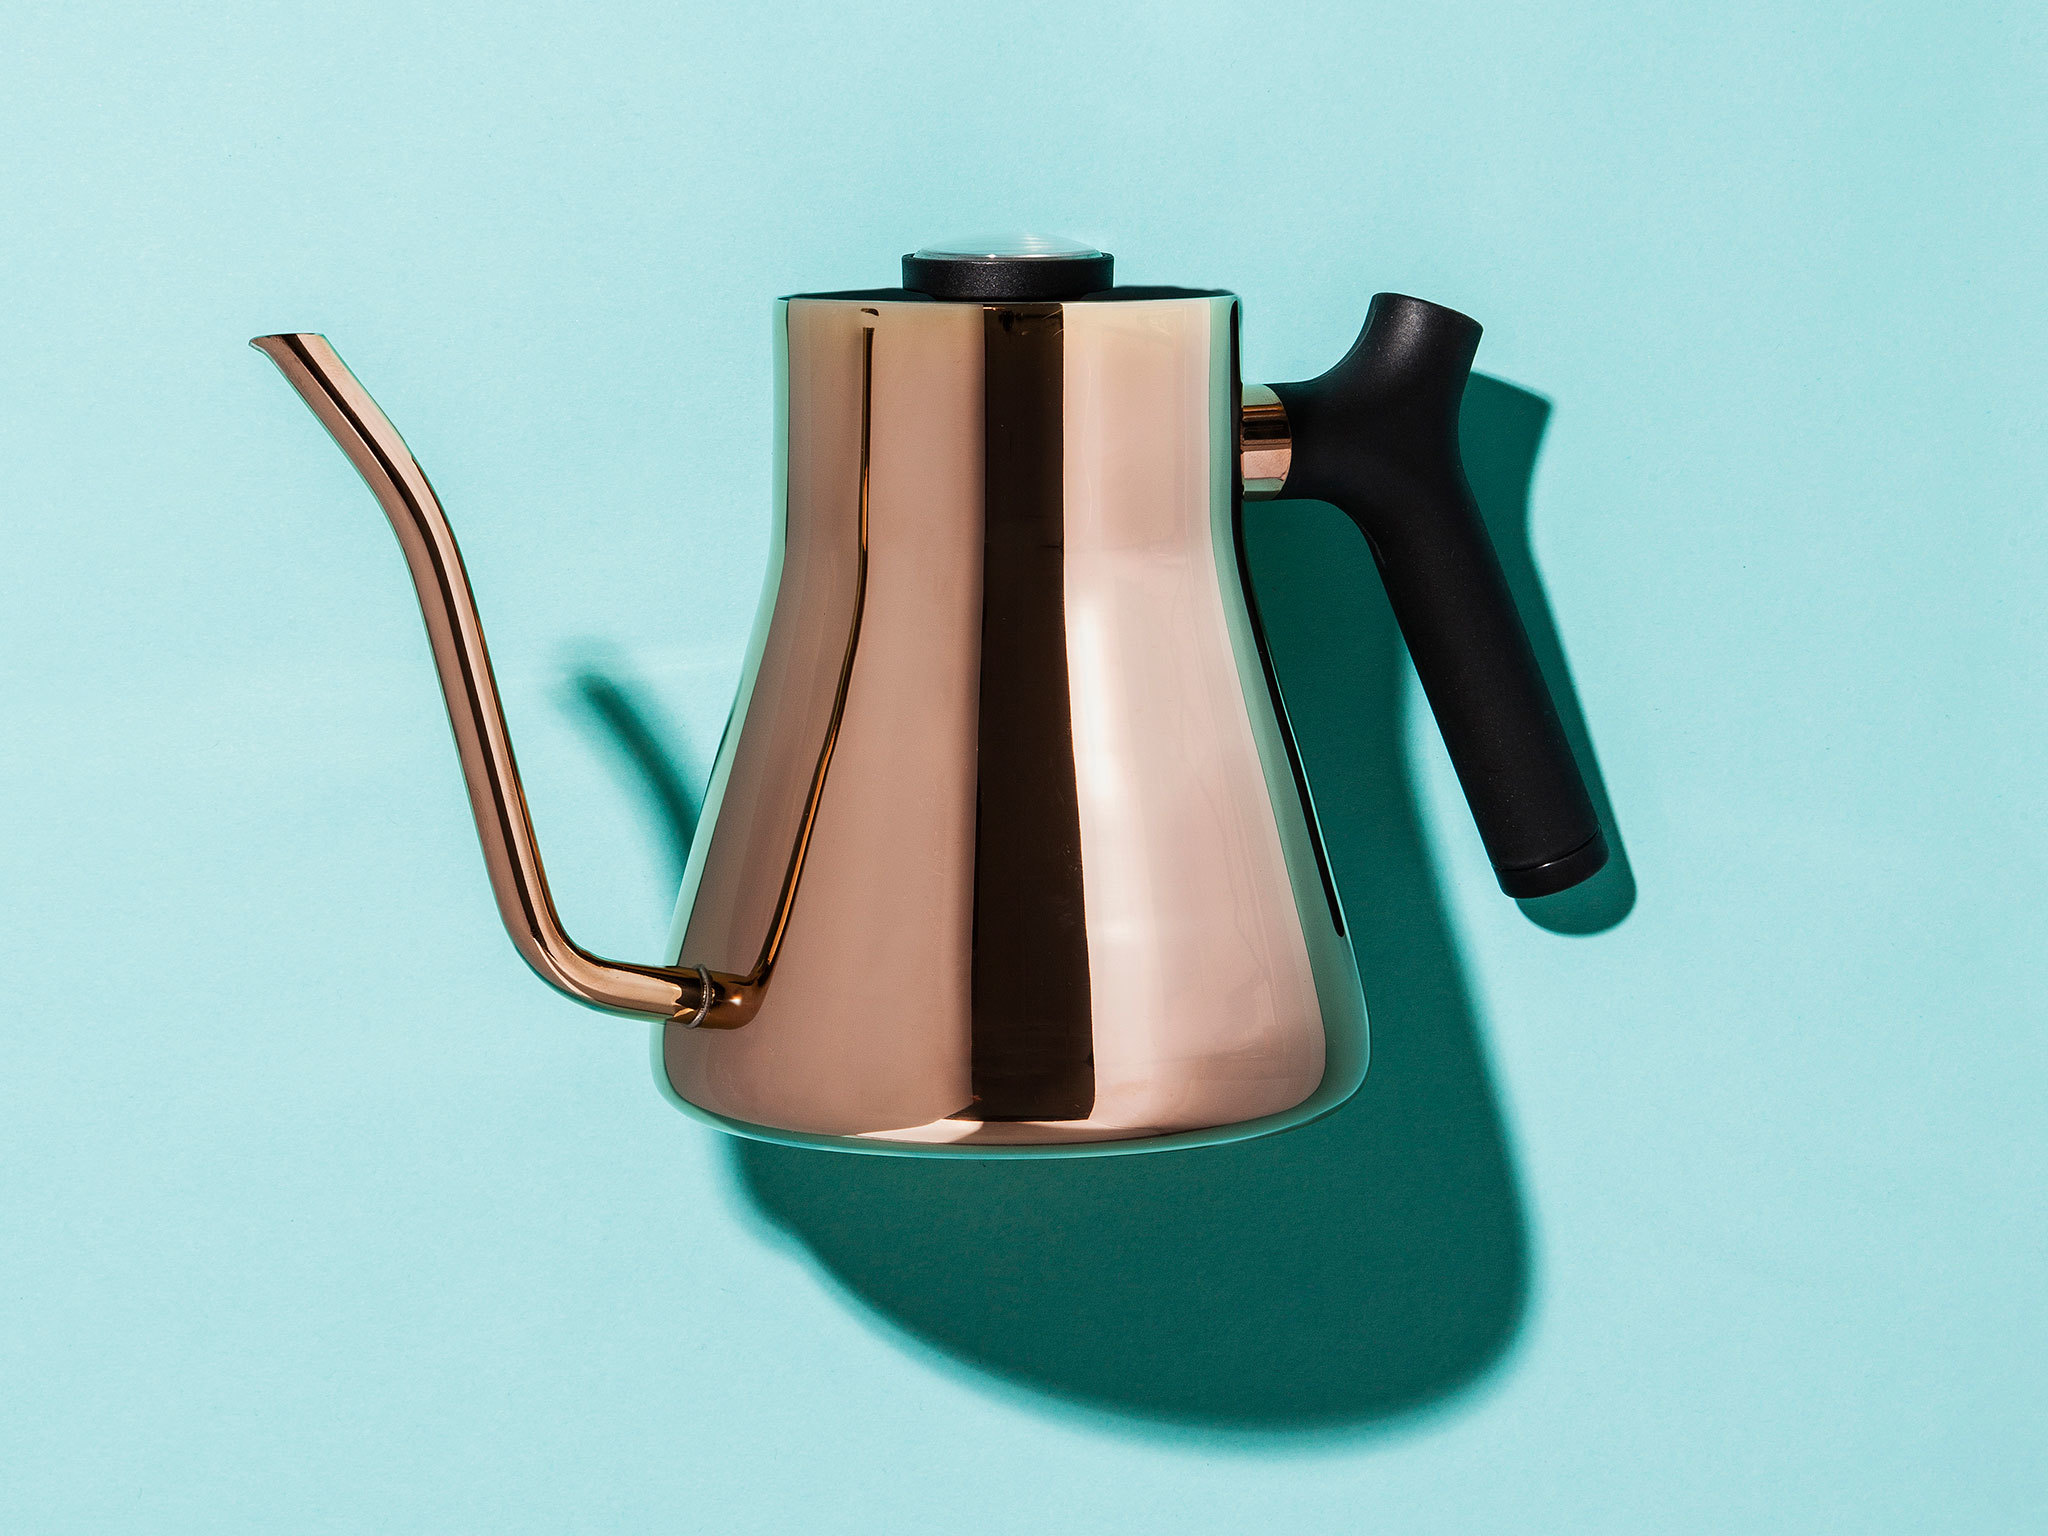 Christmas gift guide: gadgets - Stagg kettle